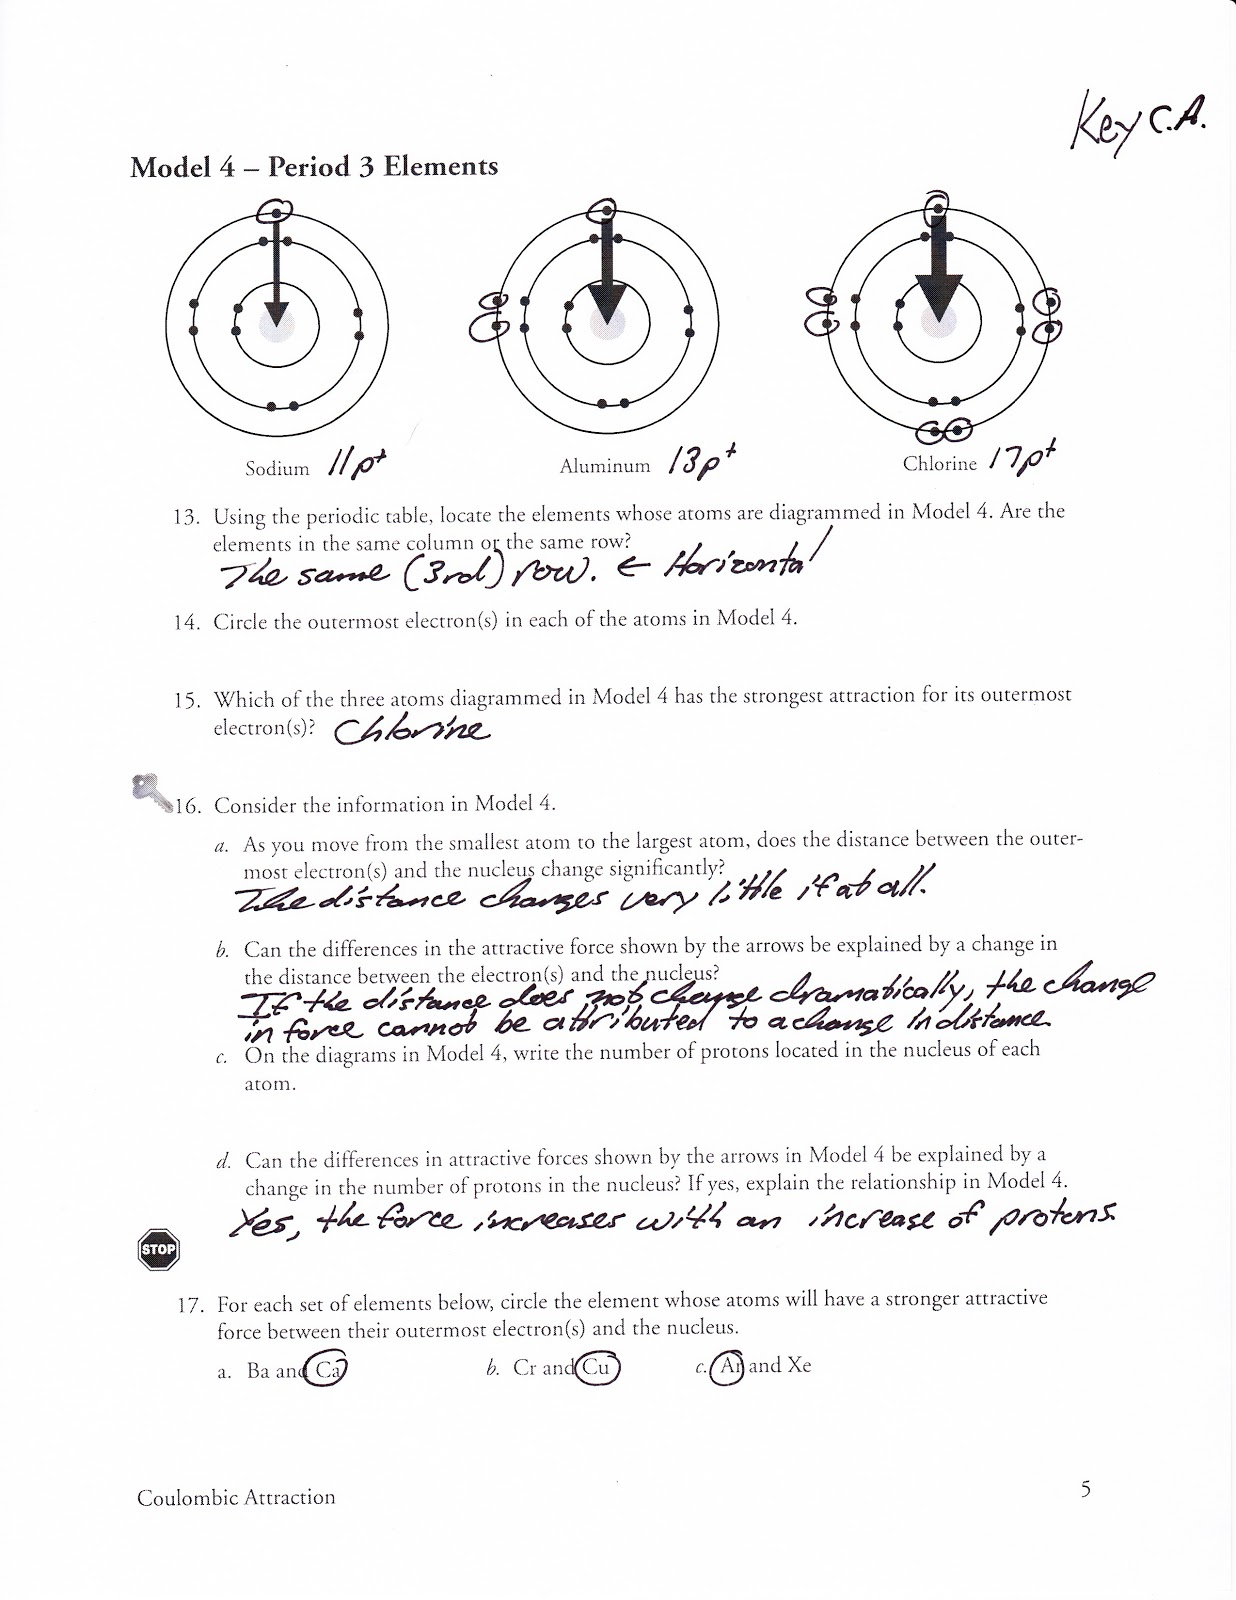 Physical and chemical properties pogil answer key of ion formation array advanced periodic trends worksheet answer key pogil kidz activities rh reedaudio com fandeluxe Image collections